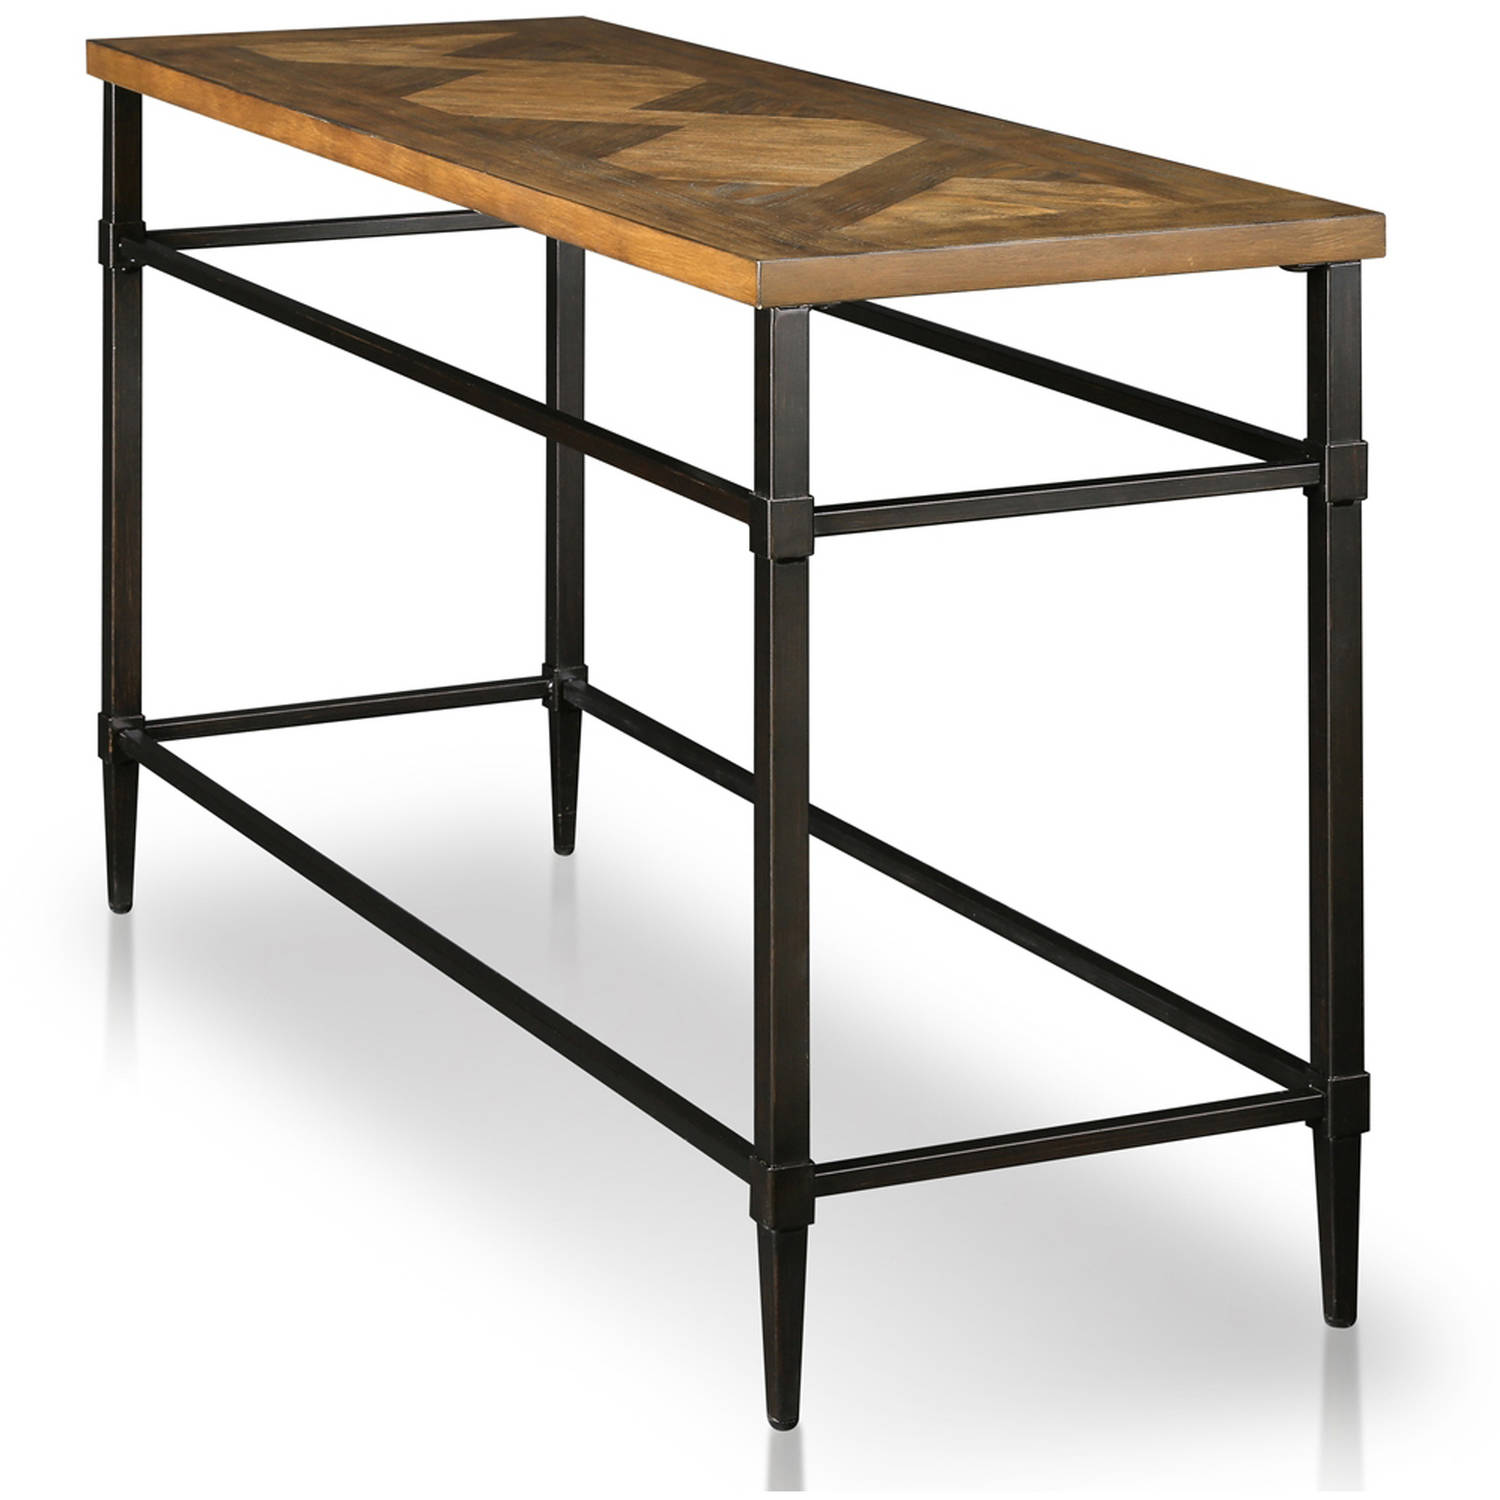 Marvelous Furniture Of America Rhett Industrial Metal Frame Sofa Table Light Oak Gmtry Best Dining Table And Chair Ideas Images Gmtryco